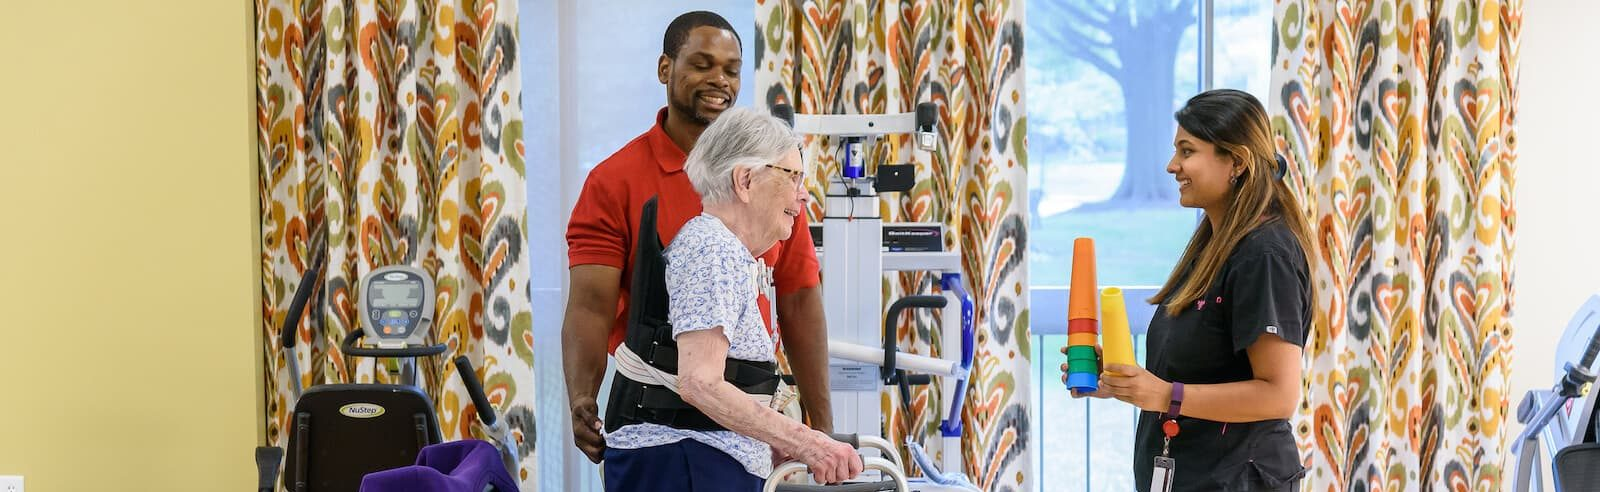 Physical therapists assist senior with walker